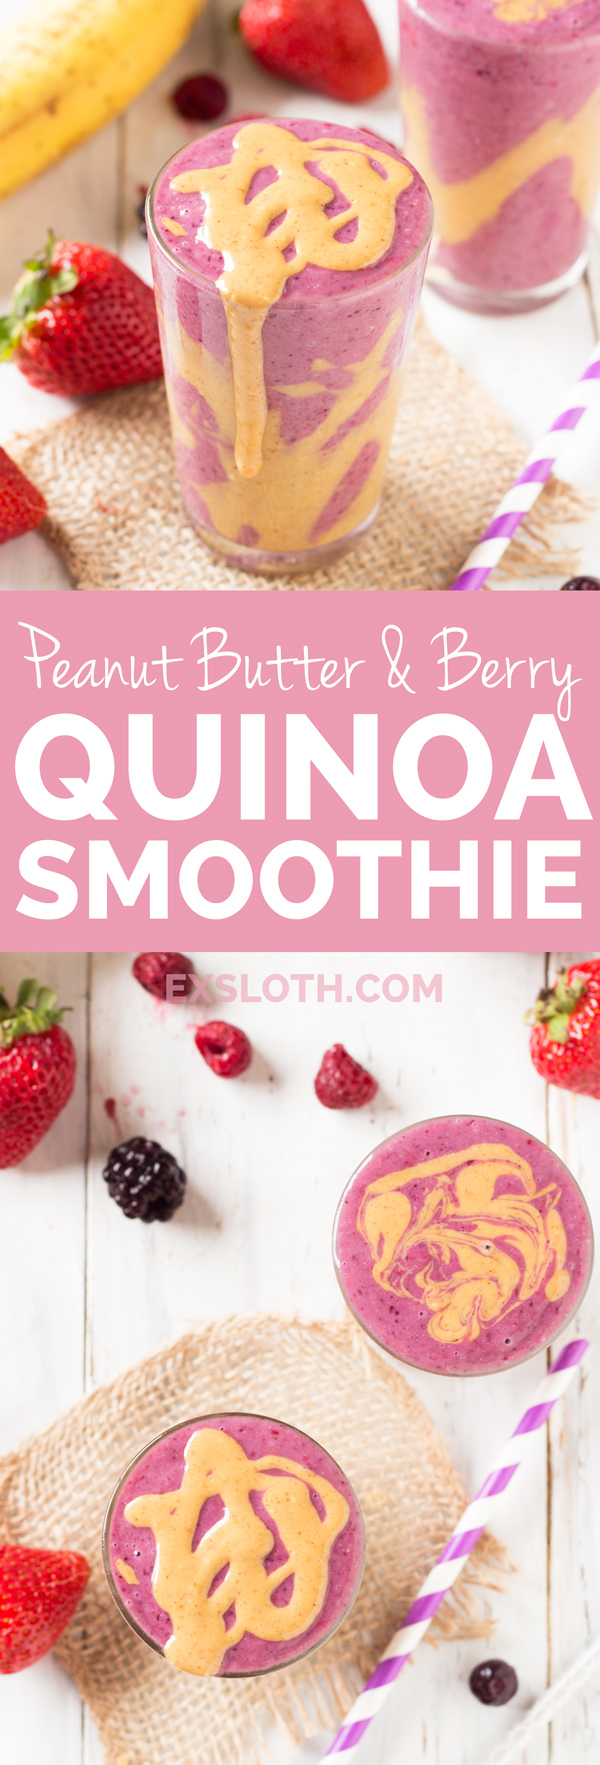 Peanut Butter and Berry Quinoa Smoothie via @ExSloth | ExSloth.com